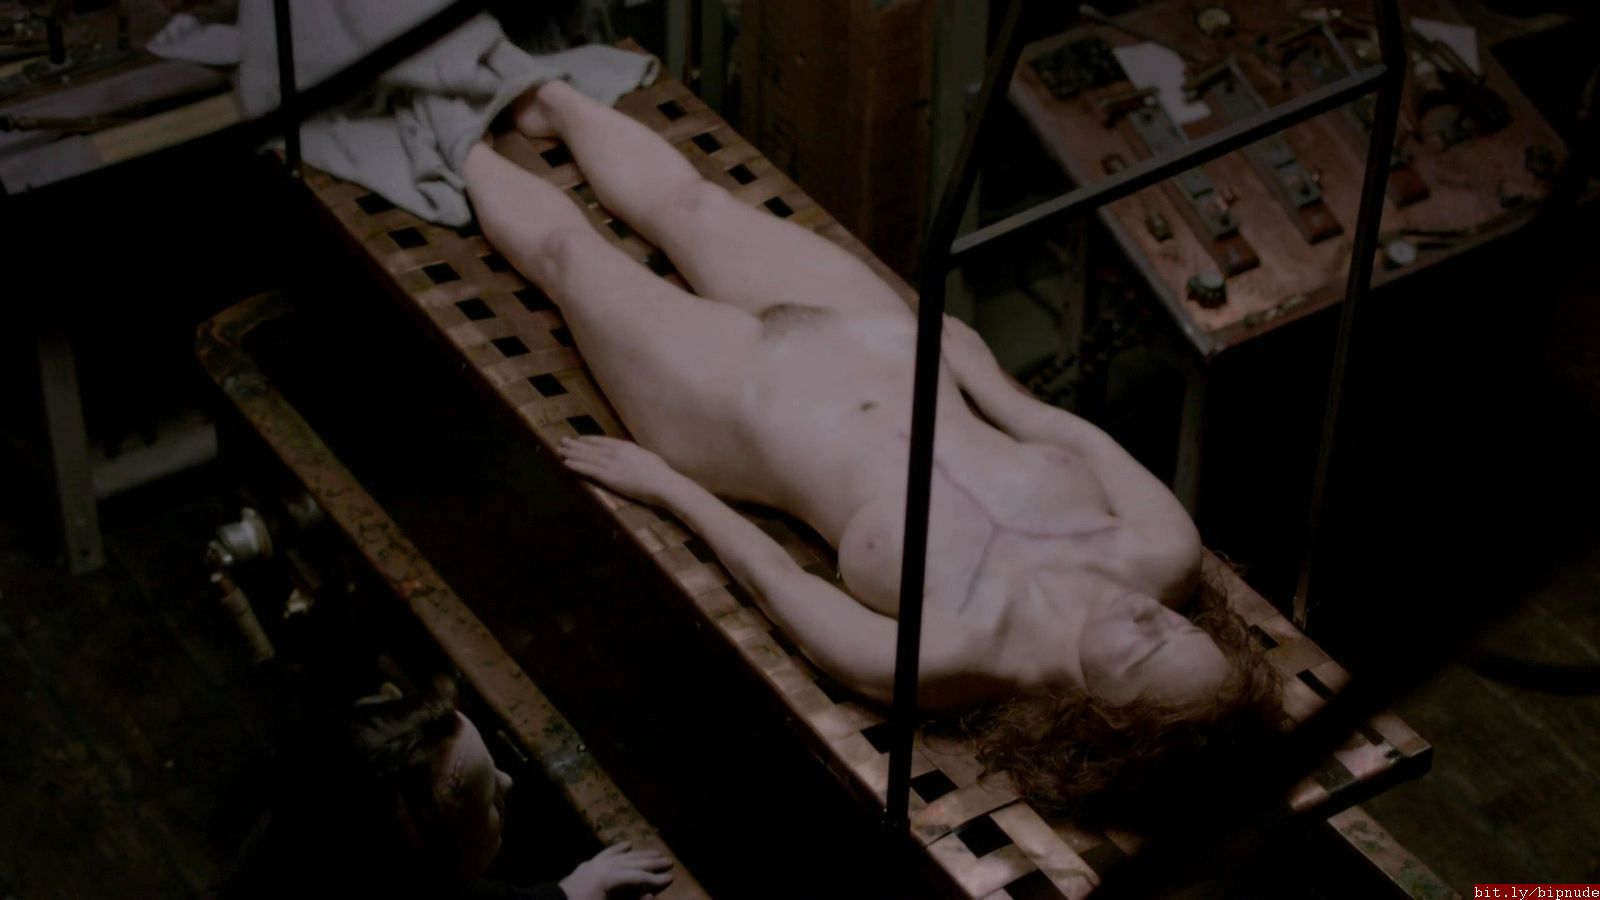 Billie piper penny dreadful naked